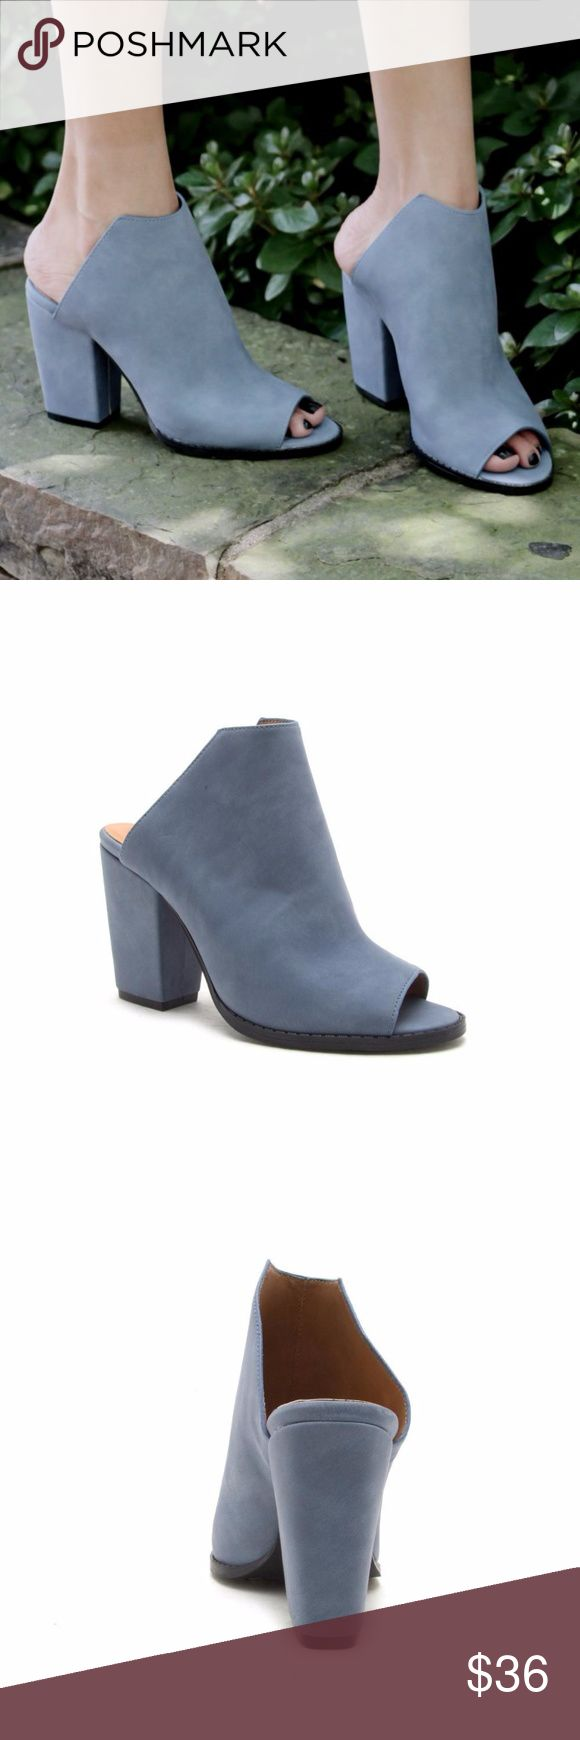 """Moon Blue Nubuck Mules COMPLETE YOUR FASHION-FORWARD LOOK IN THESE TRENDY BLOCK MULES FEATURING A FAUX LEATHER UPPER WITH A CONSTRUCTED VAMP, PEEP TOE, CHUNKY BLOCK HEEL AND AN OPEN BACK. LOVE THESE WITH A DENIM MINI OR BOYFRIEND JEANS. MATERIAL: MAN-MADE, NUBUCK LEATHERETTE. SOLE: SYNTHETIC. MEASUREMENT: HEEL HEIGHT: 3.75"""" (APPROX.) TRUE TO SIZE Qupid Shoes Mules & Clogs"""